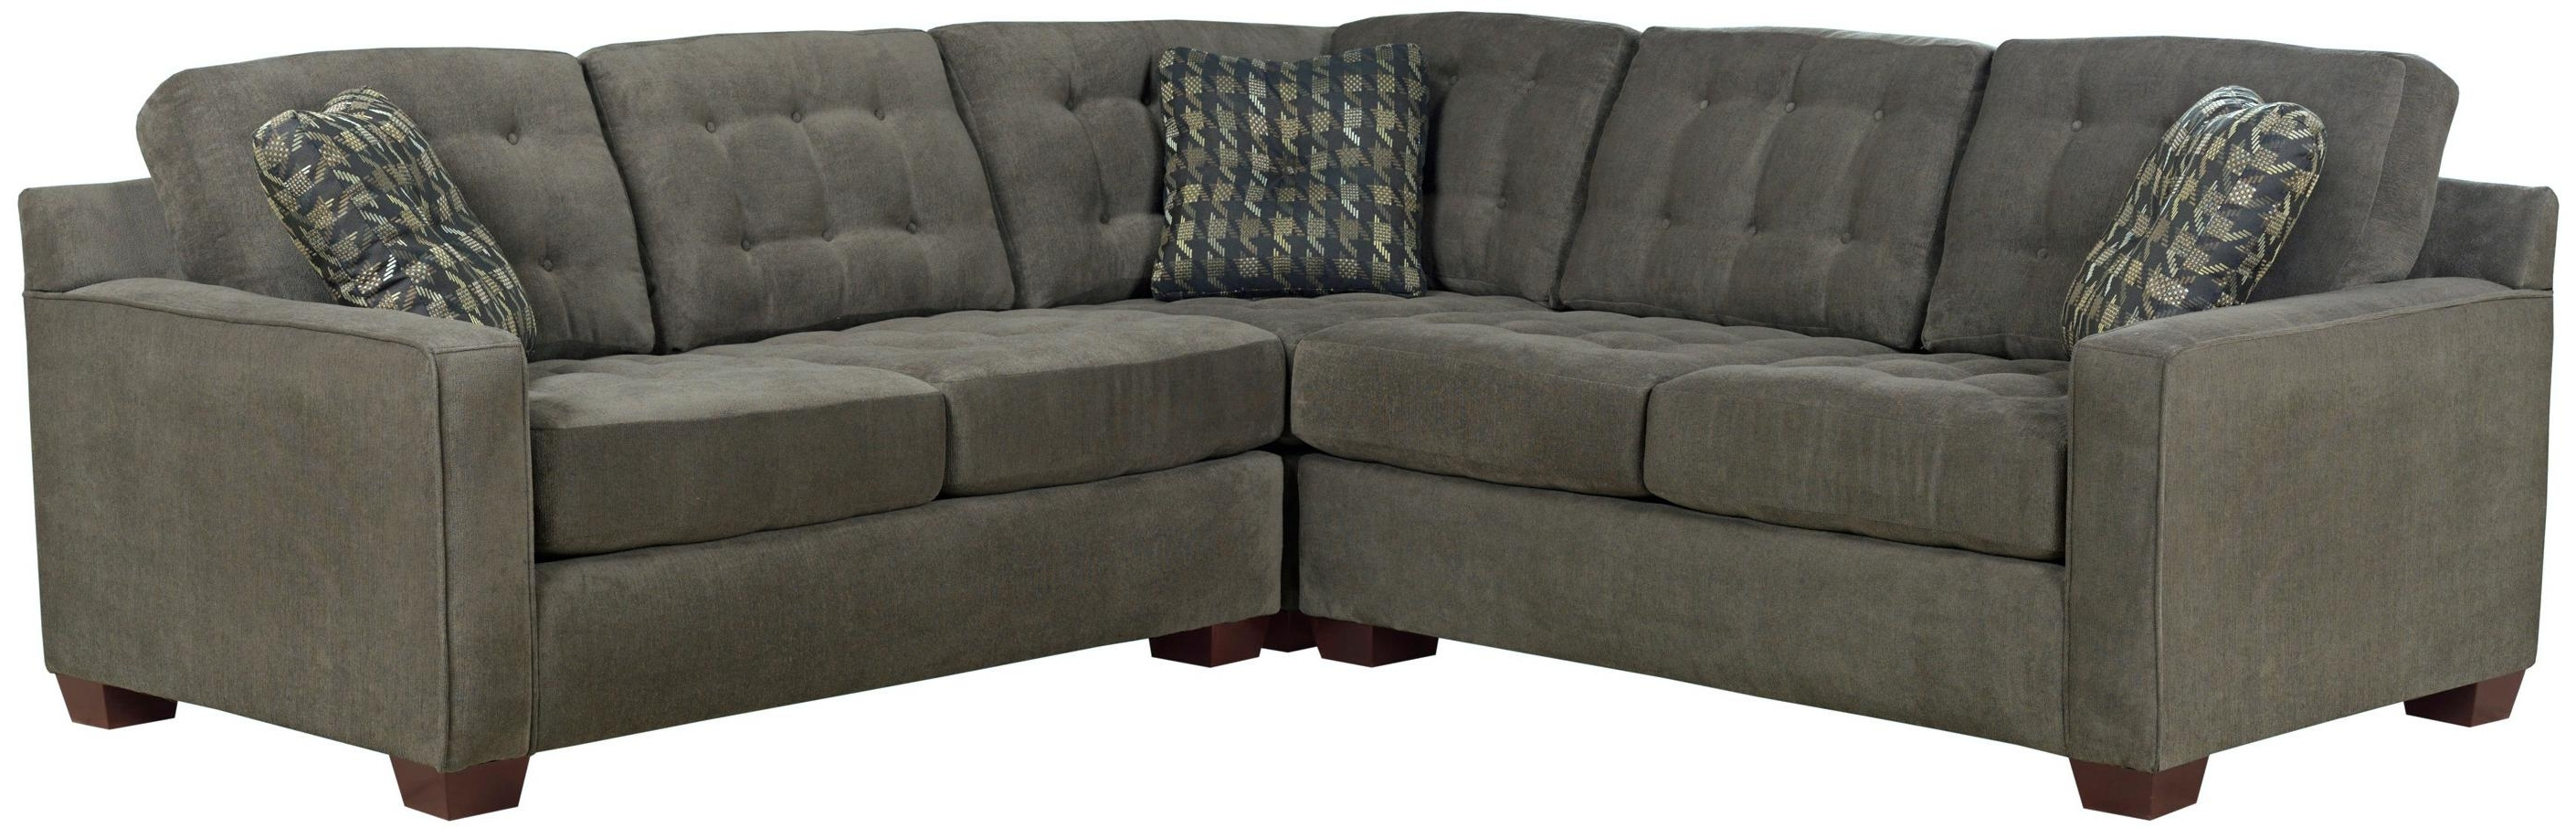 Famous Sam Levitz Sectional Sofas Pertaining To Broyhill Furniture Tribeca Contemporary L Shaped Sectional Sofa (View 12 of 15)